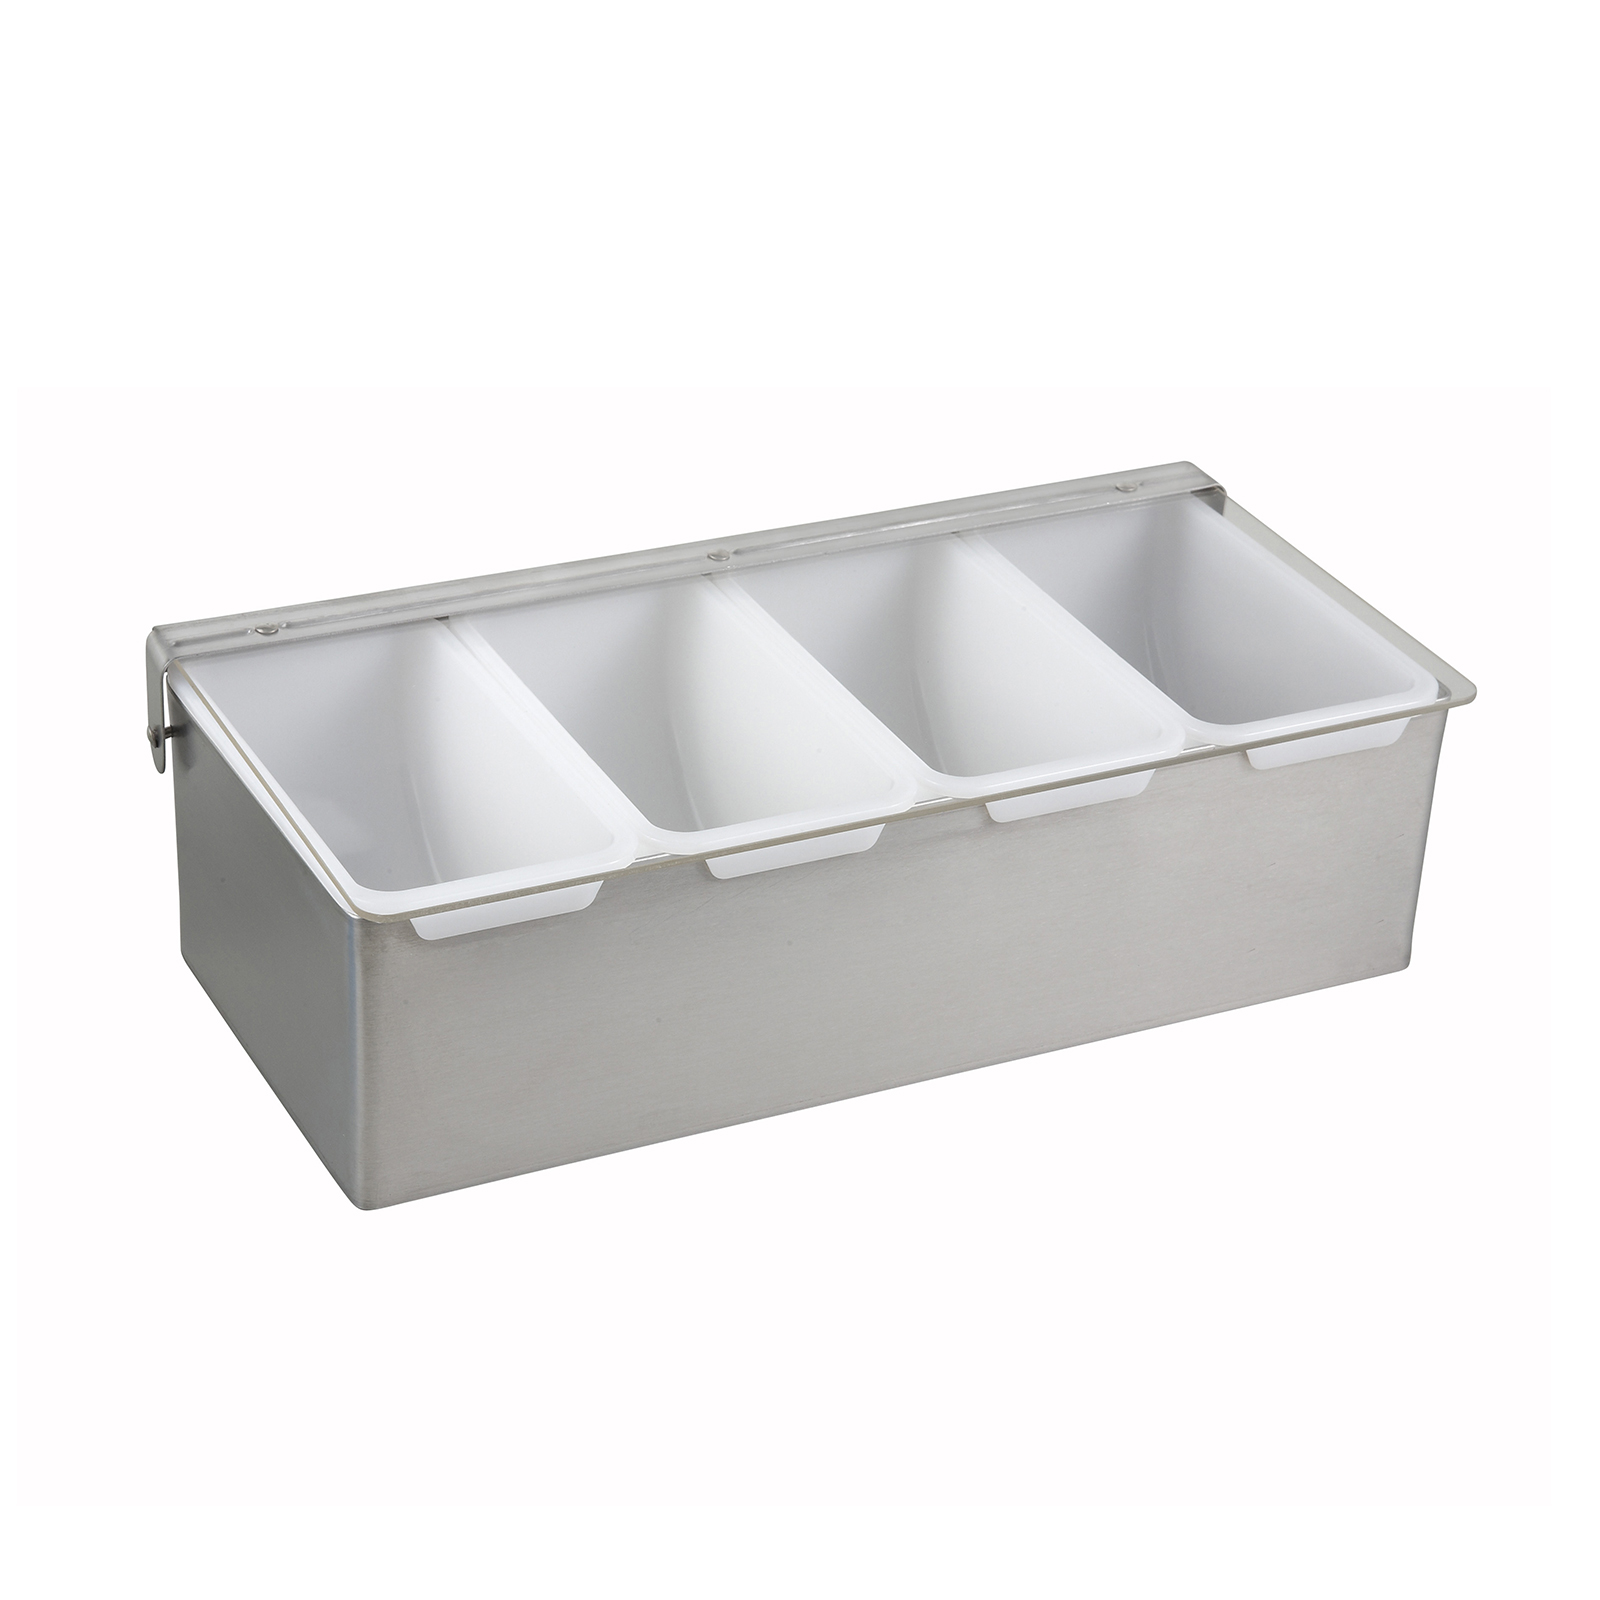 Winco CDP-4 condiment caddy, countertop organizer